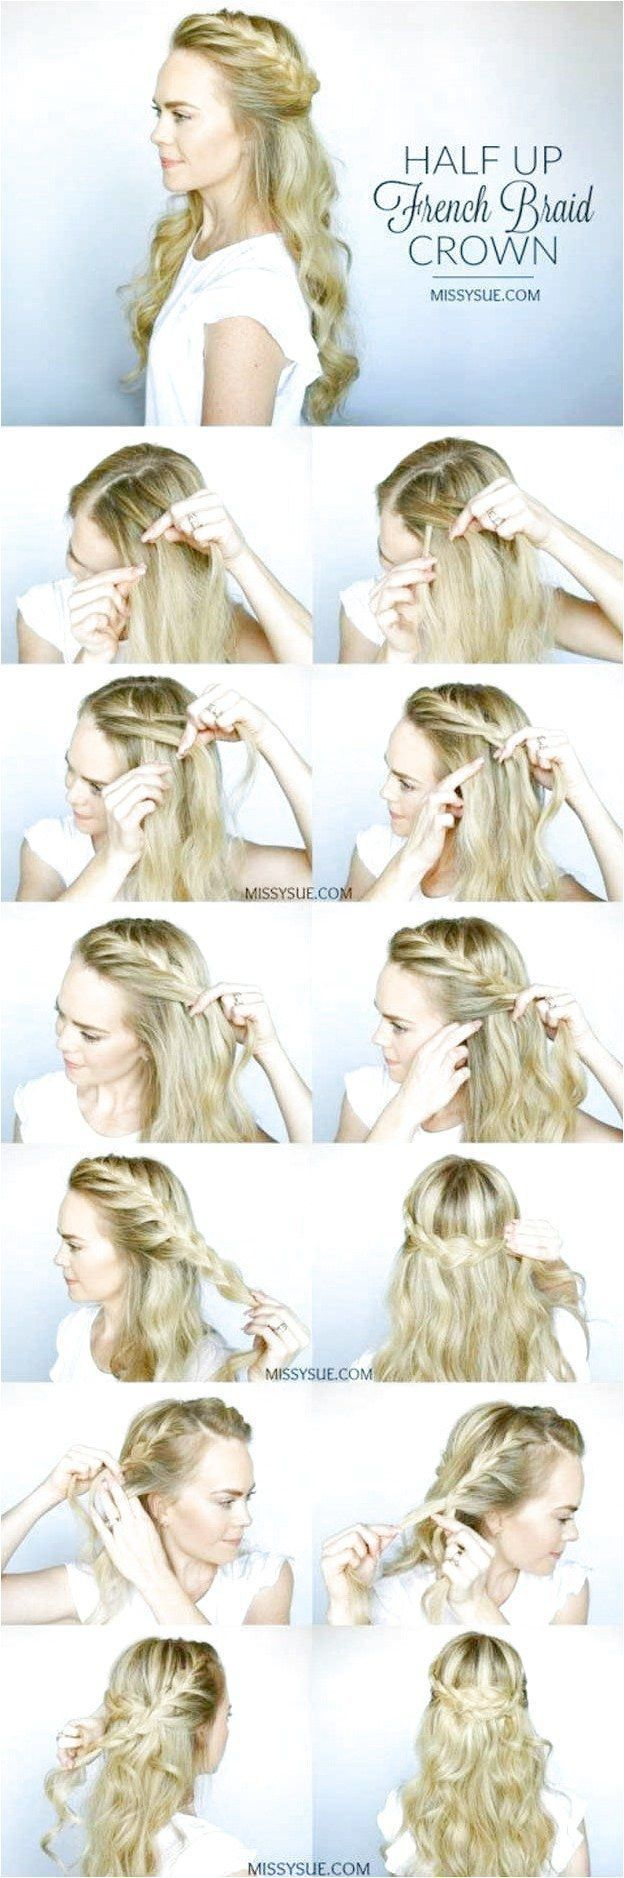 The Best Hair Instructions Half Up French Braid Crown Check In 2020 Braids For Medium Length Hair Hairstyles For Medium Length Hair Easy Medium Length Hair Styles